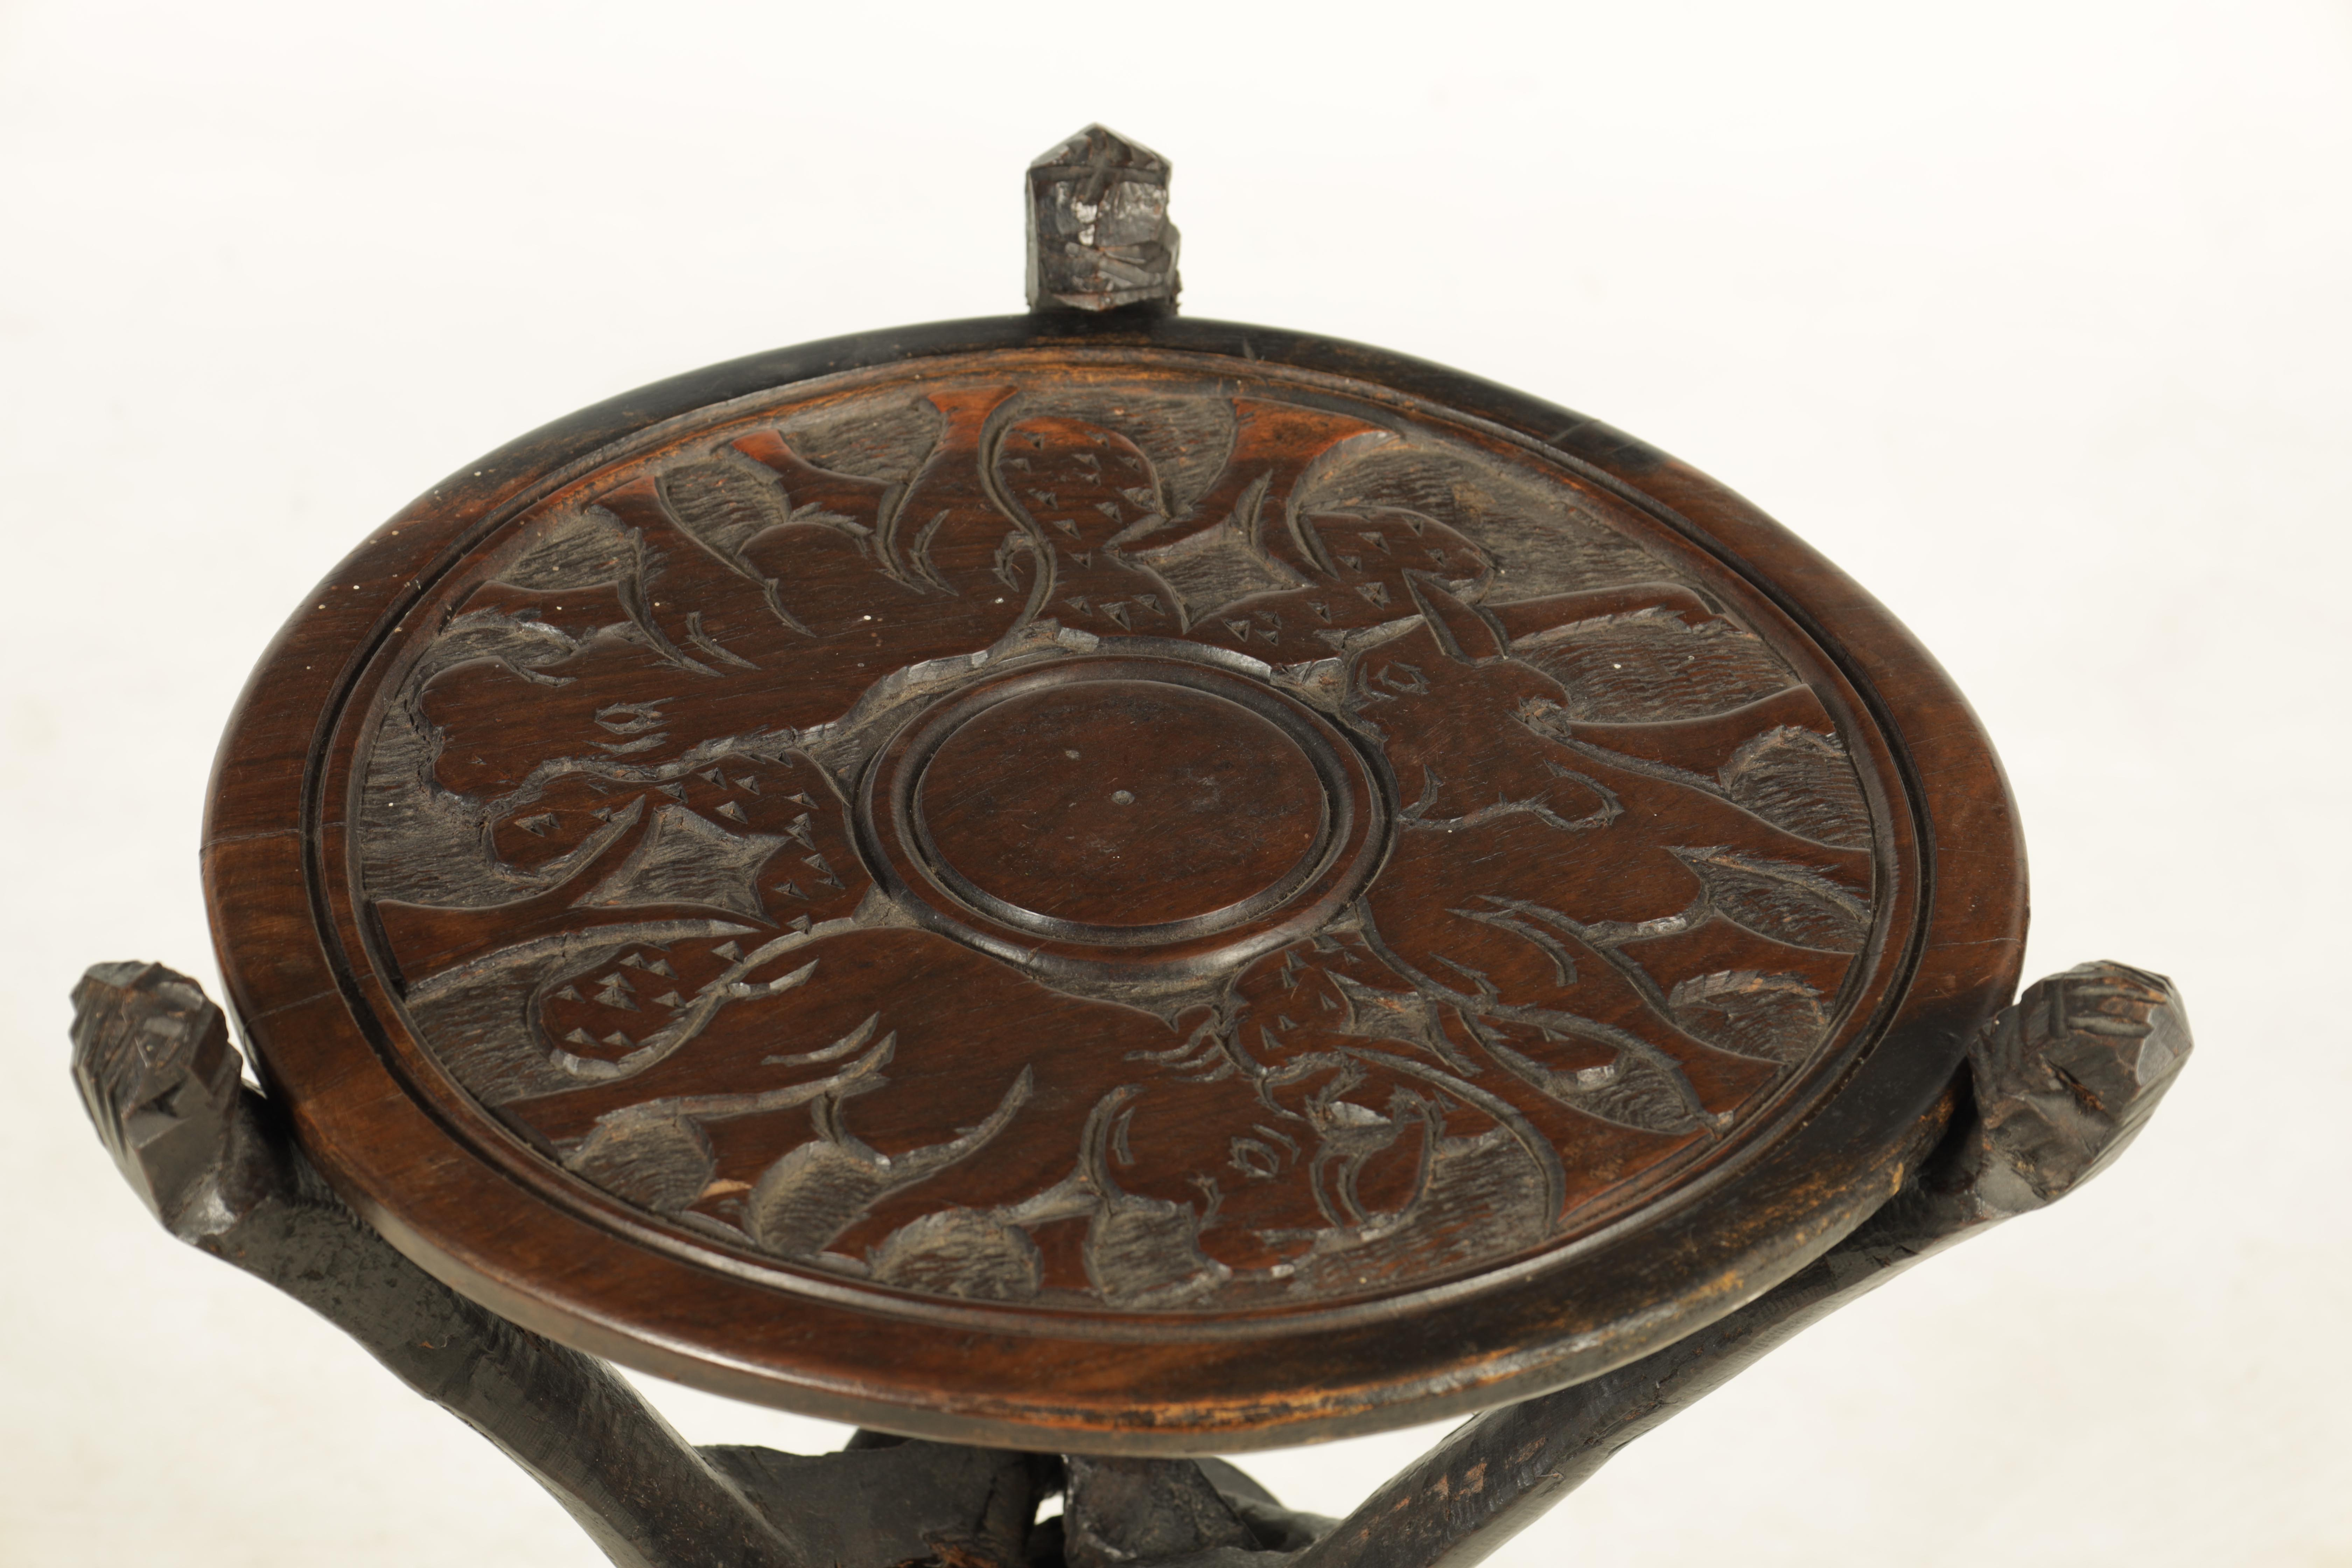 A LATE 19TH CENTURY AFRICAN HARDWOOD FOLDING TABLE the circular top relief carved with Rhinosorus - Image 2 of 7